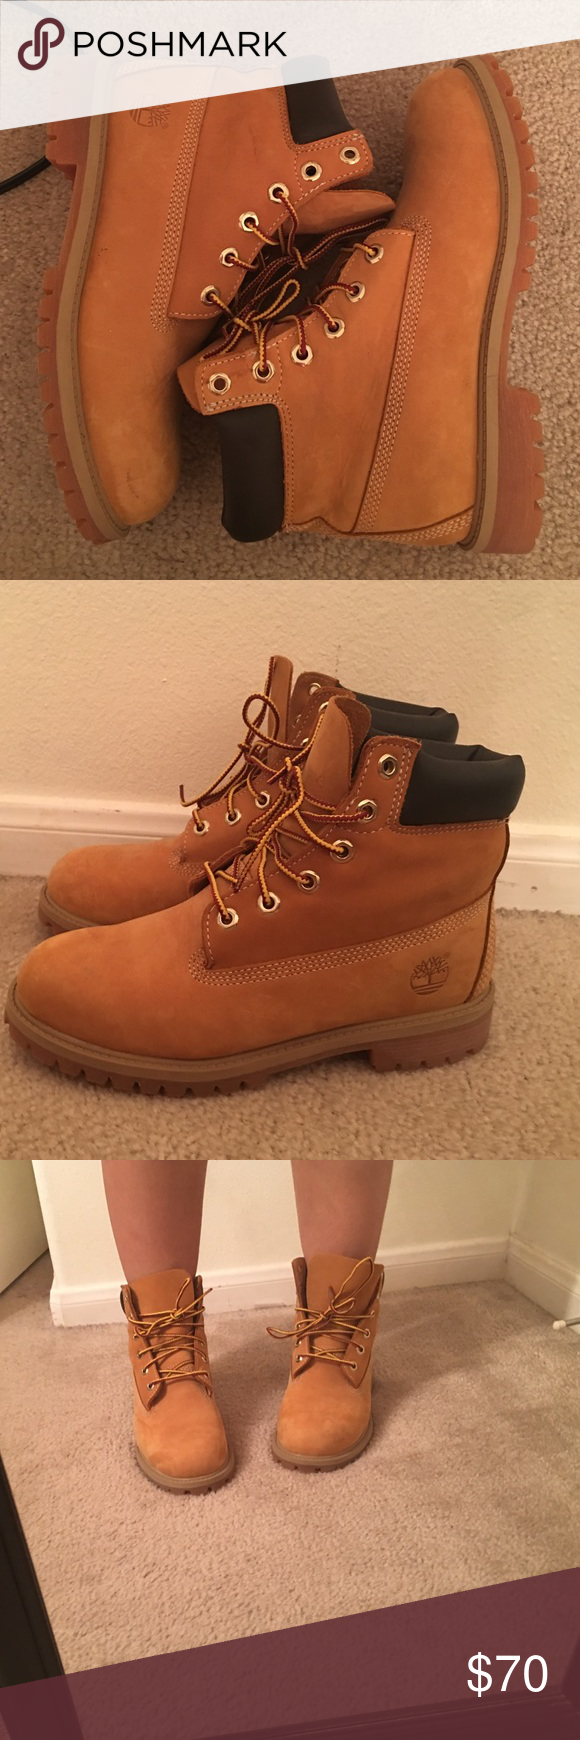 Timberlands Only worn once Timberland Shoes Winter & Rain Boots